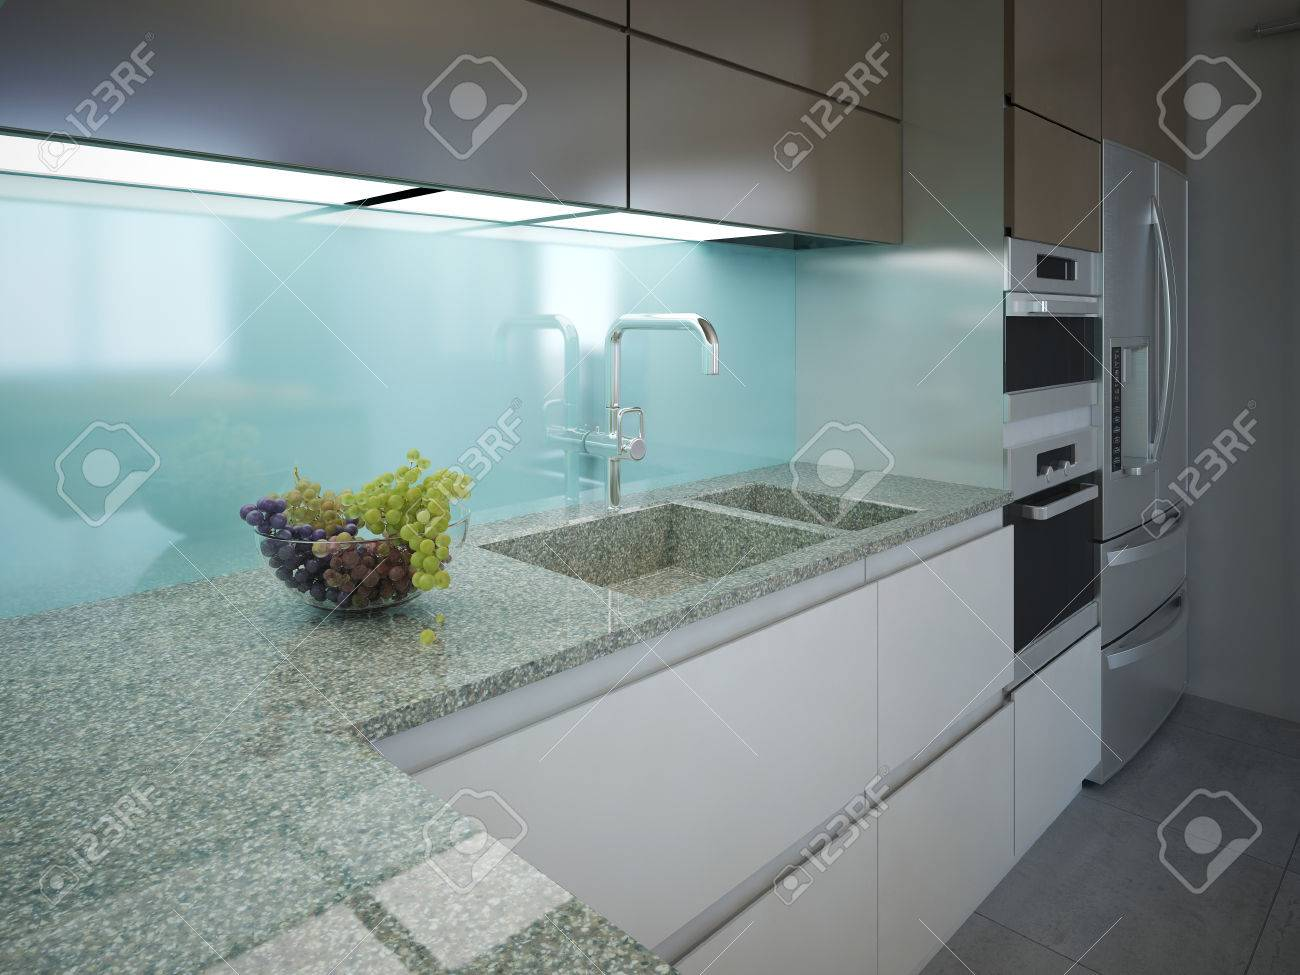 Modern kitchen clean interior design marble working area with a modern kitchen clean interior design marble working area with a light blue wall and built mozeypictures Image collections